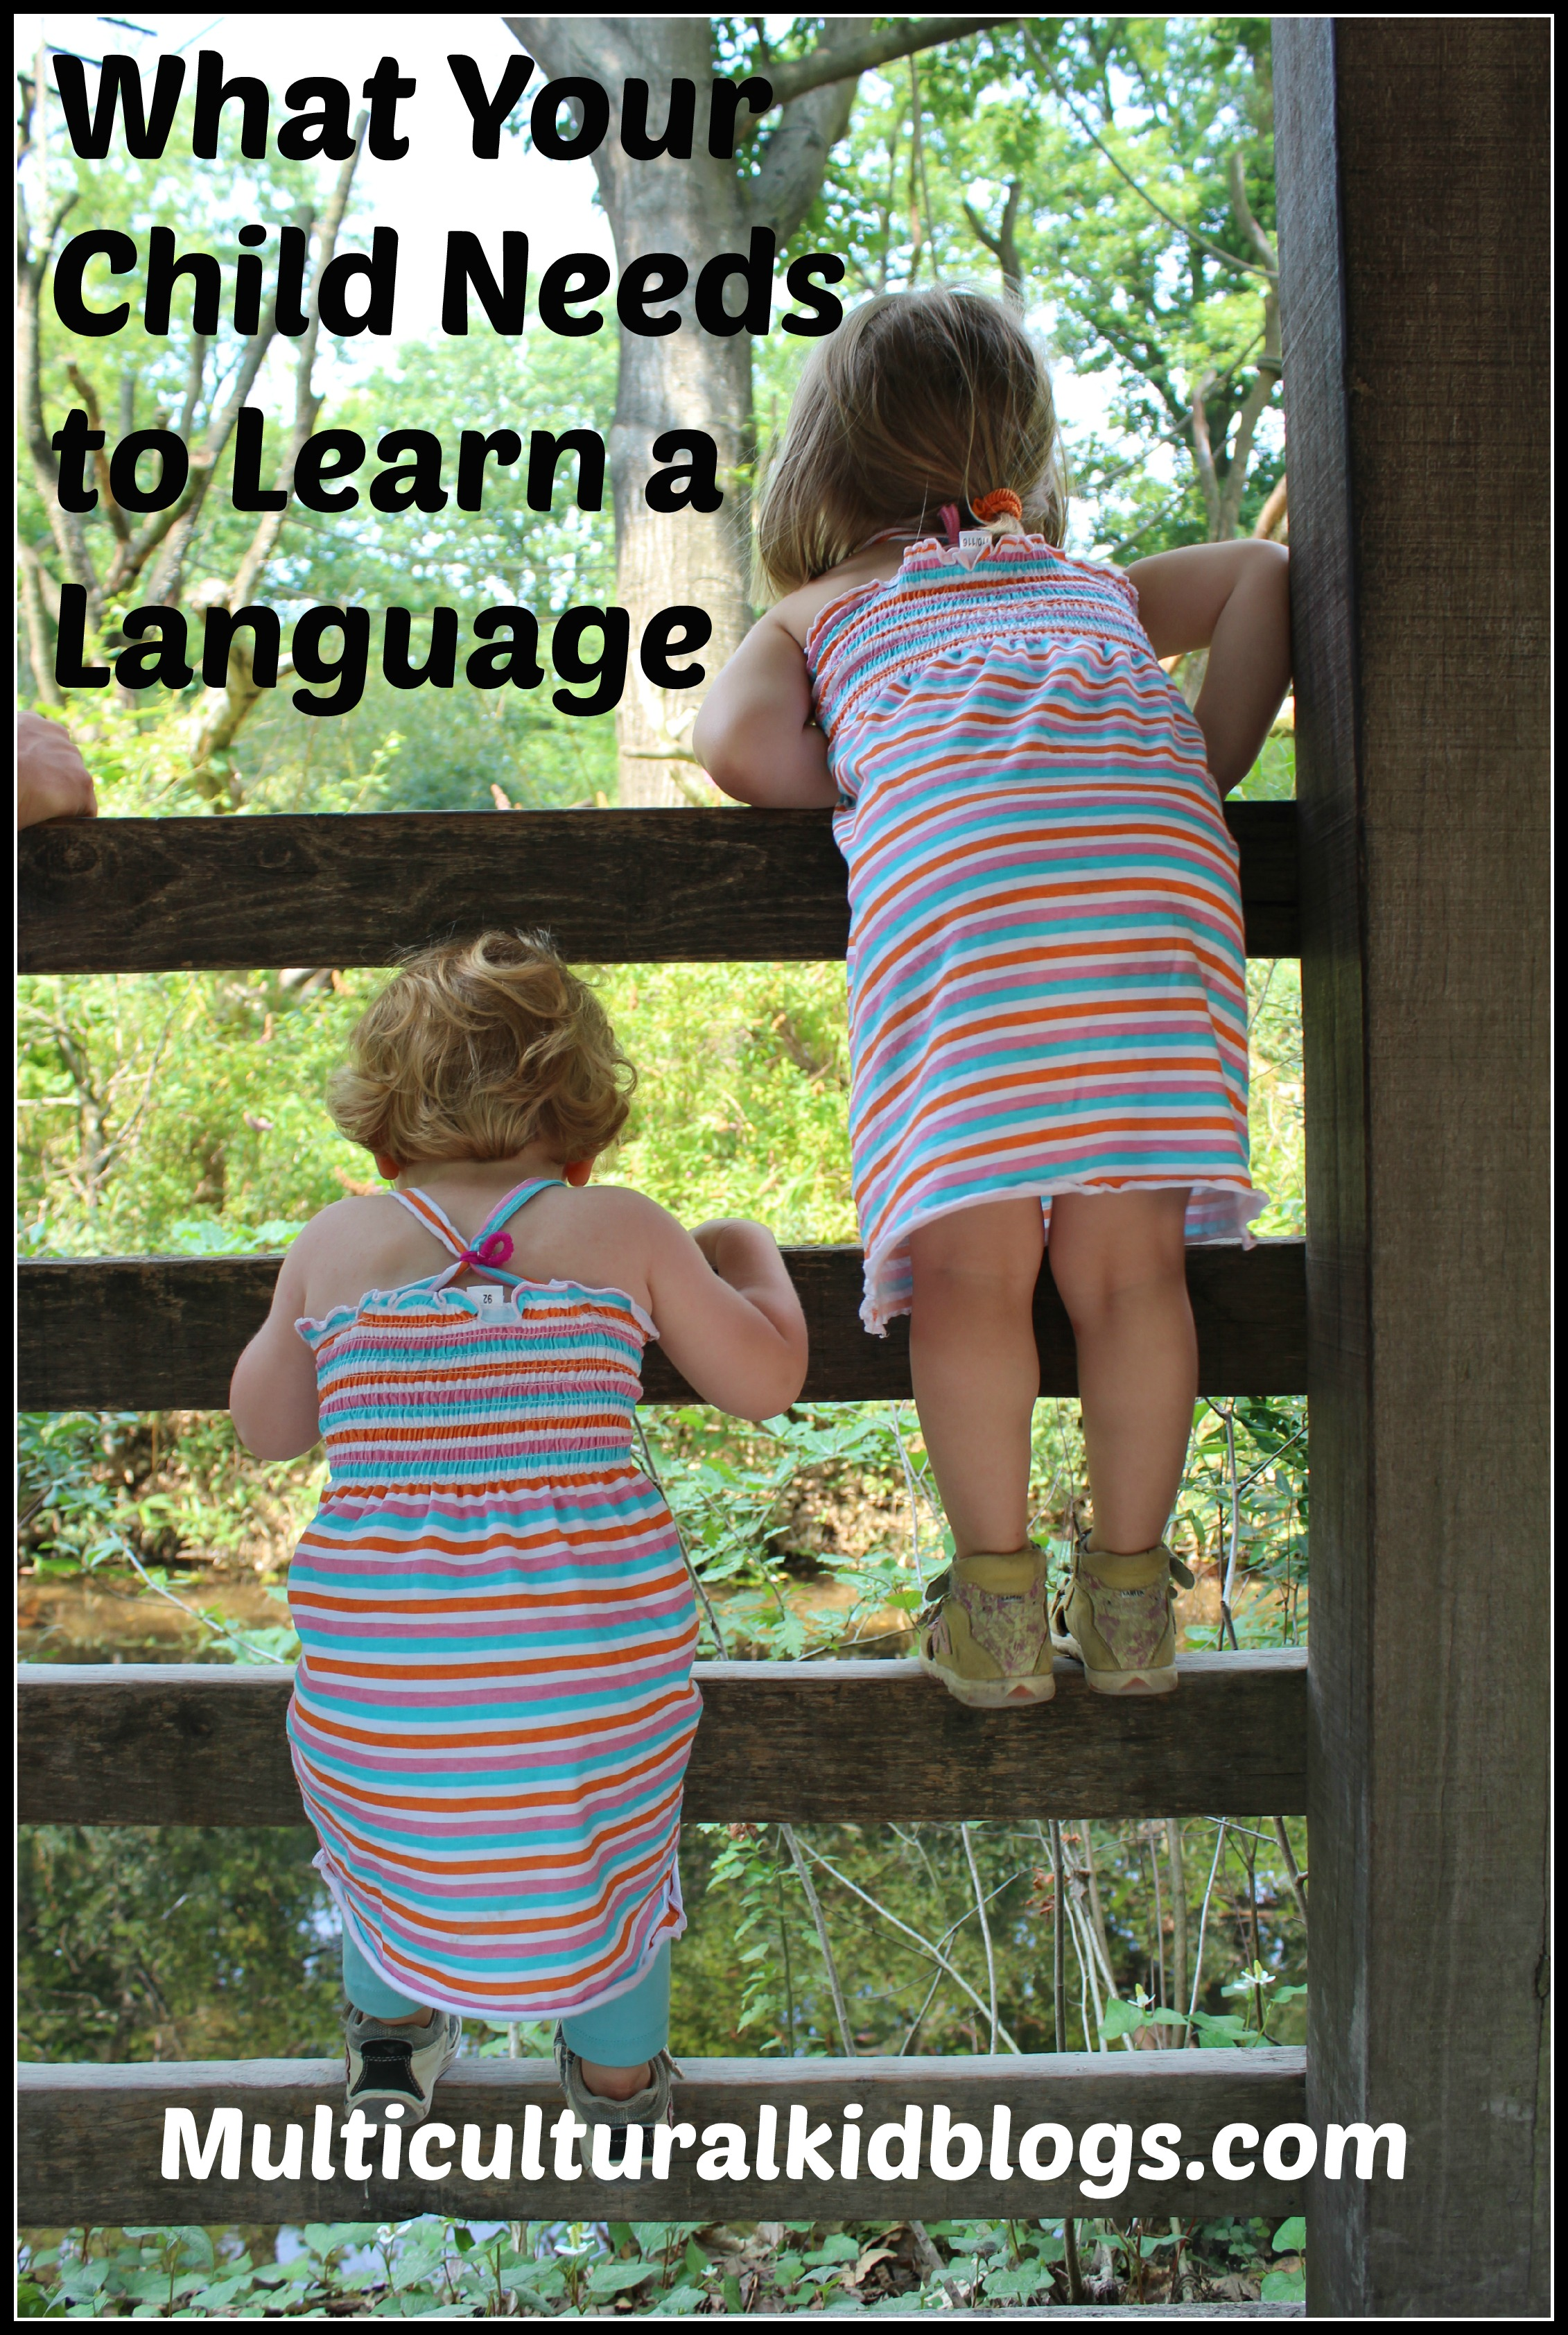 What Your Child Needs to Learn a Language | Multiculturalkidblogs.com